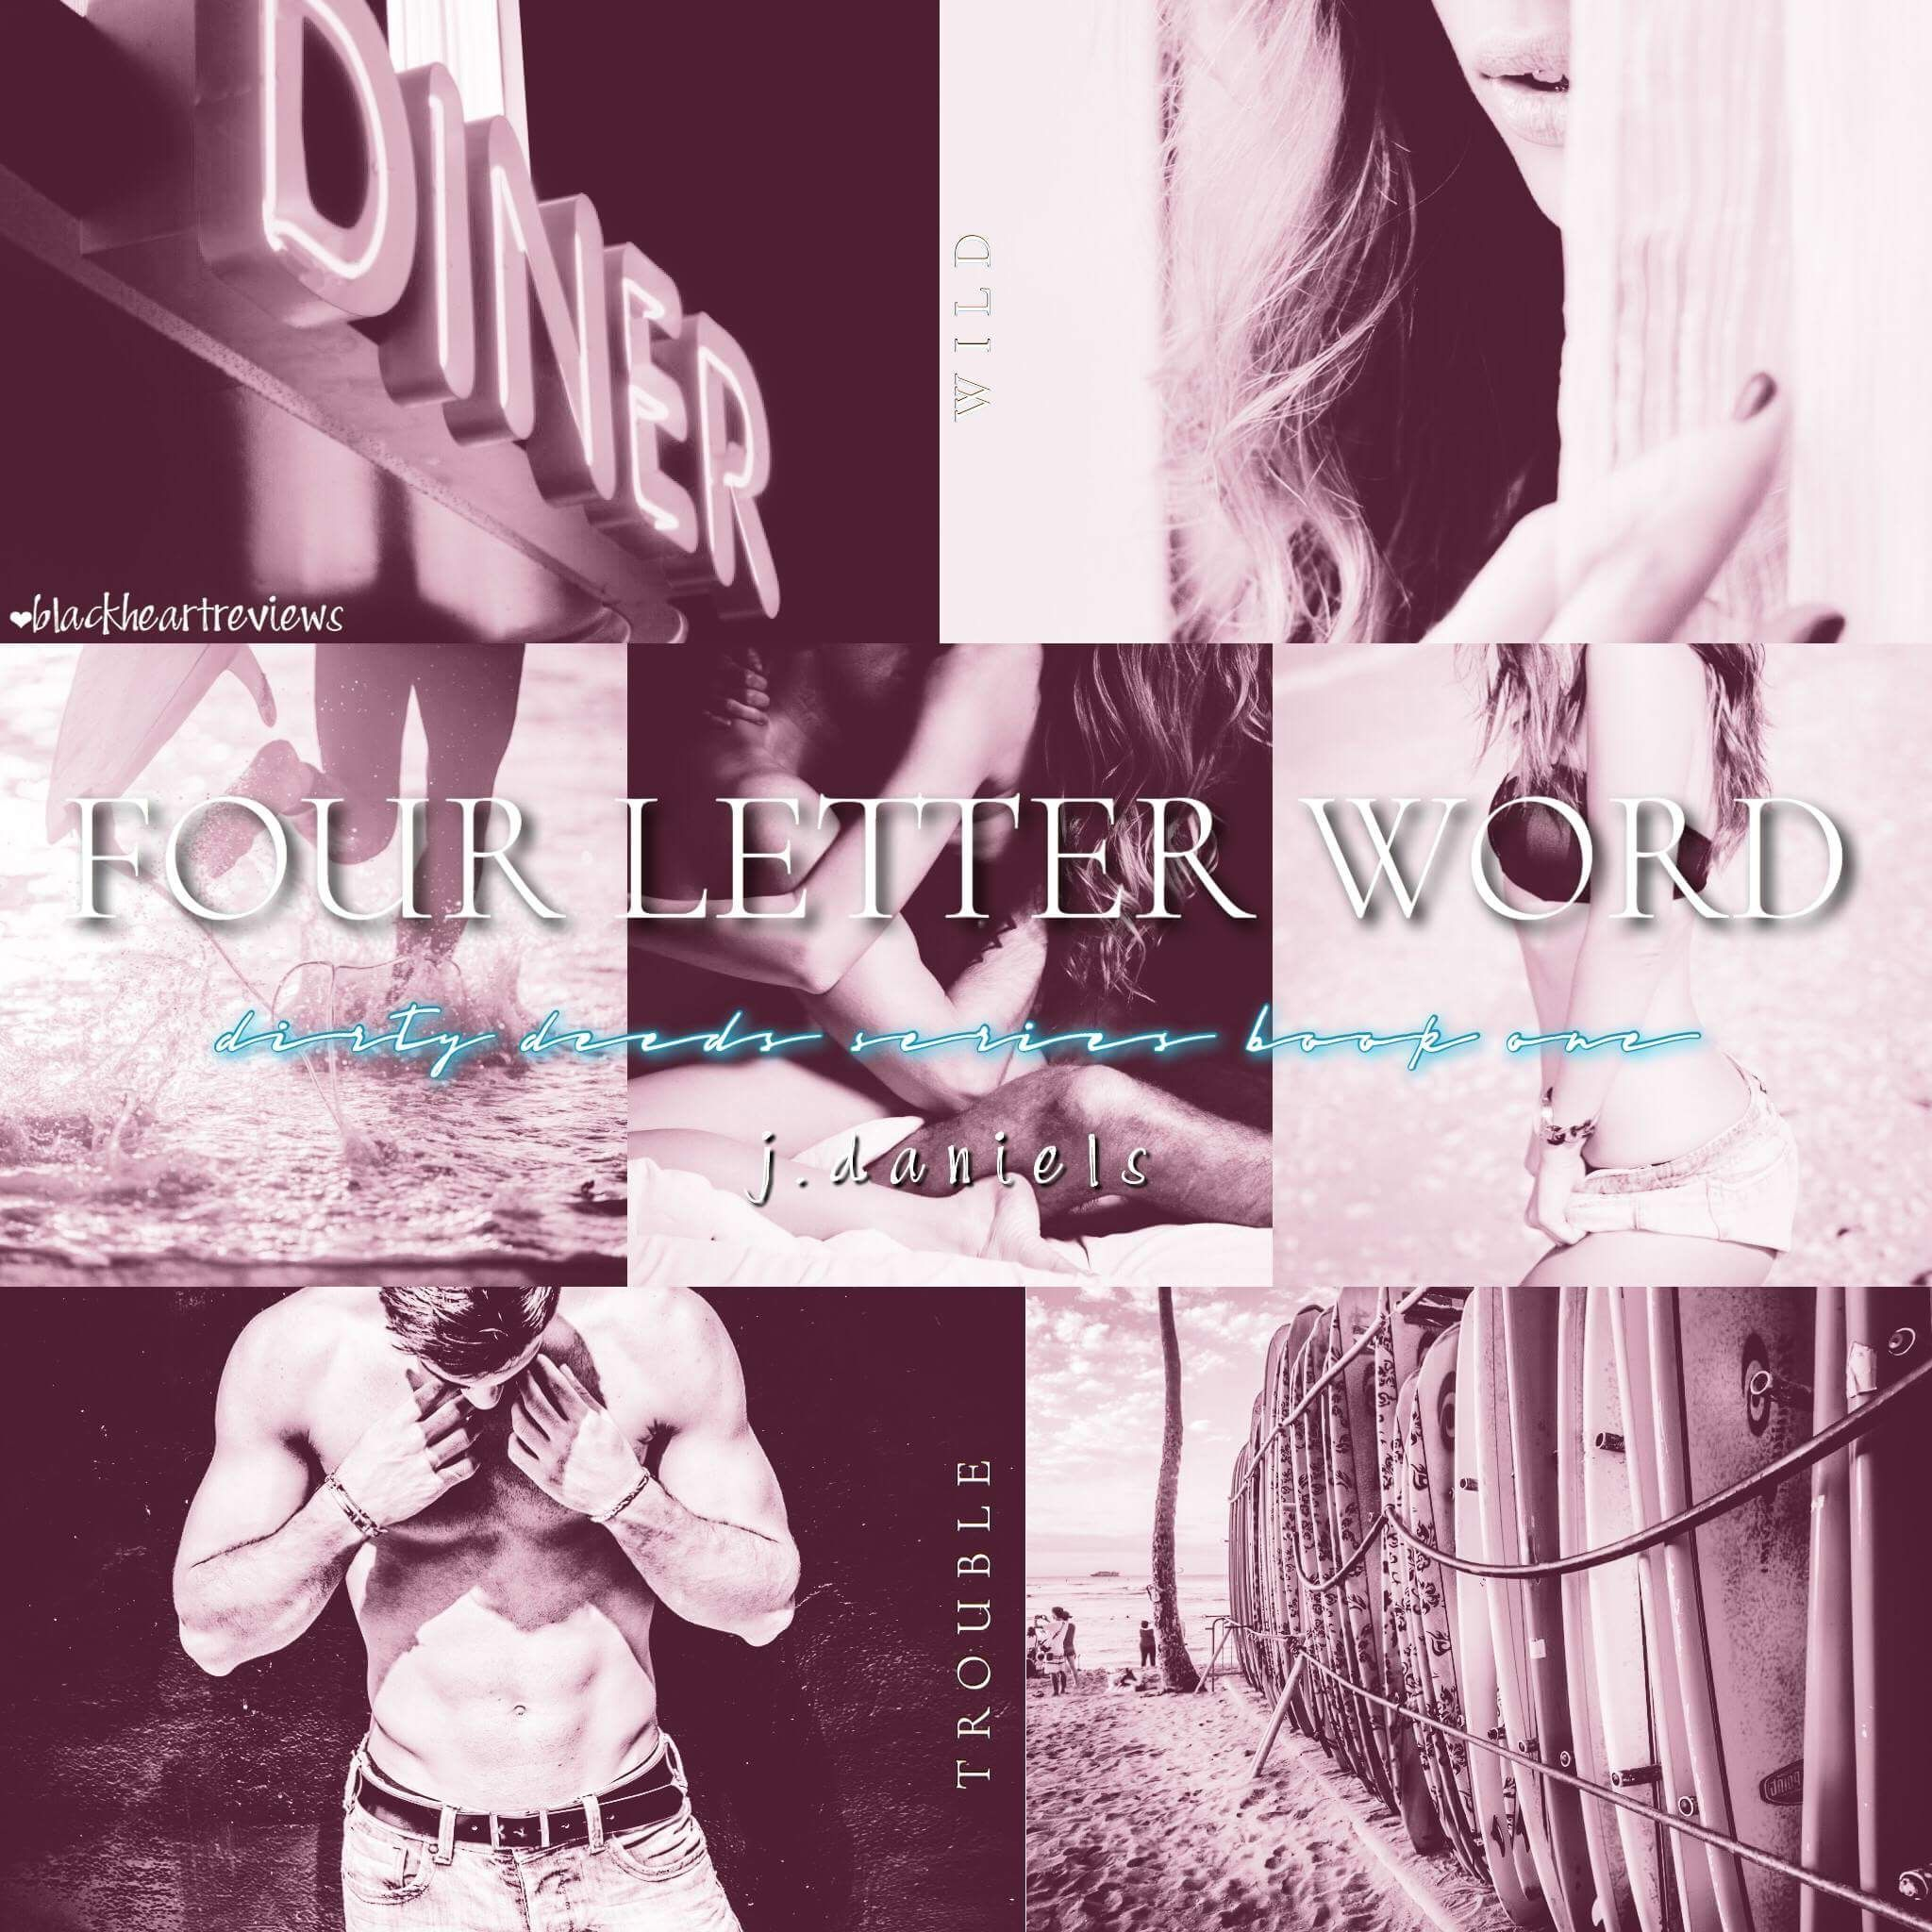 Four Letter Word By J Daniels Dirty Deeds Series I Love Booksbook